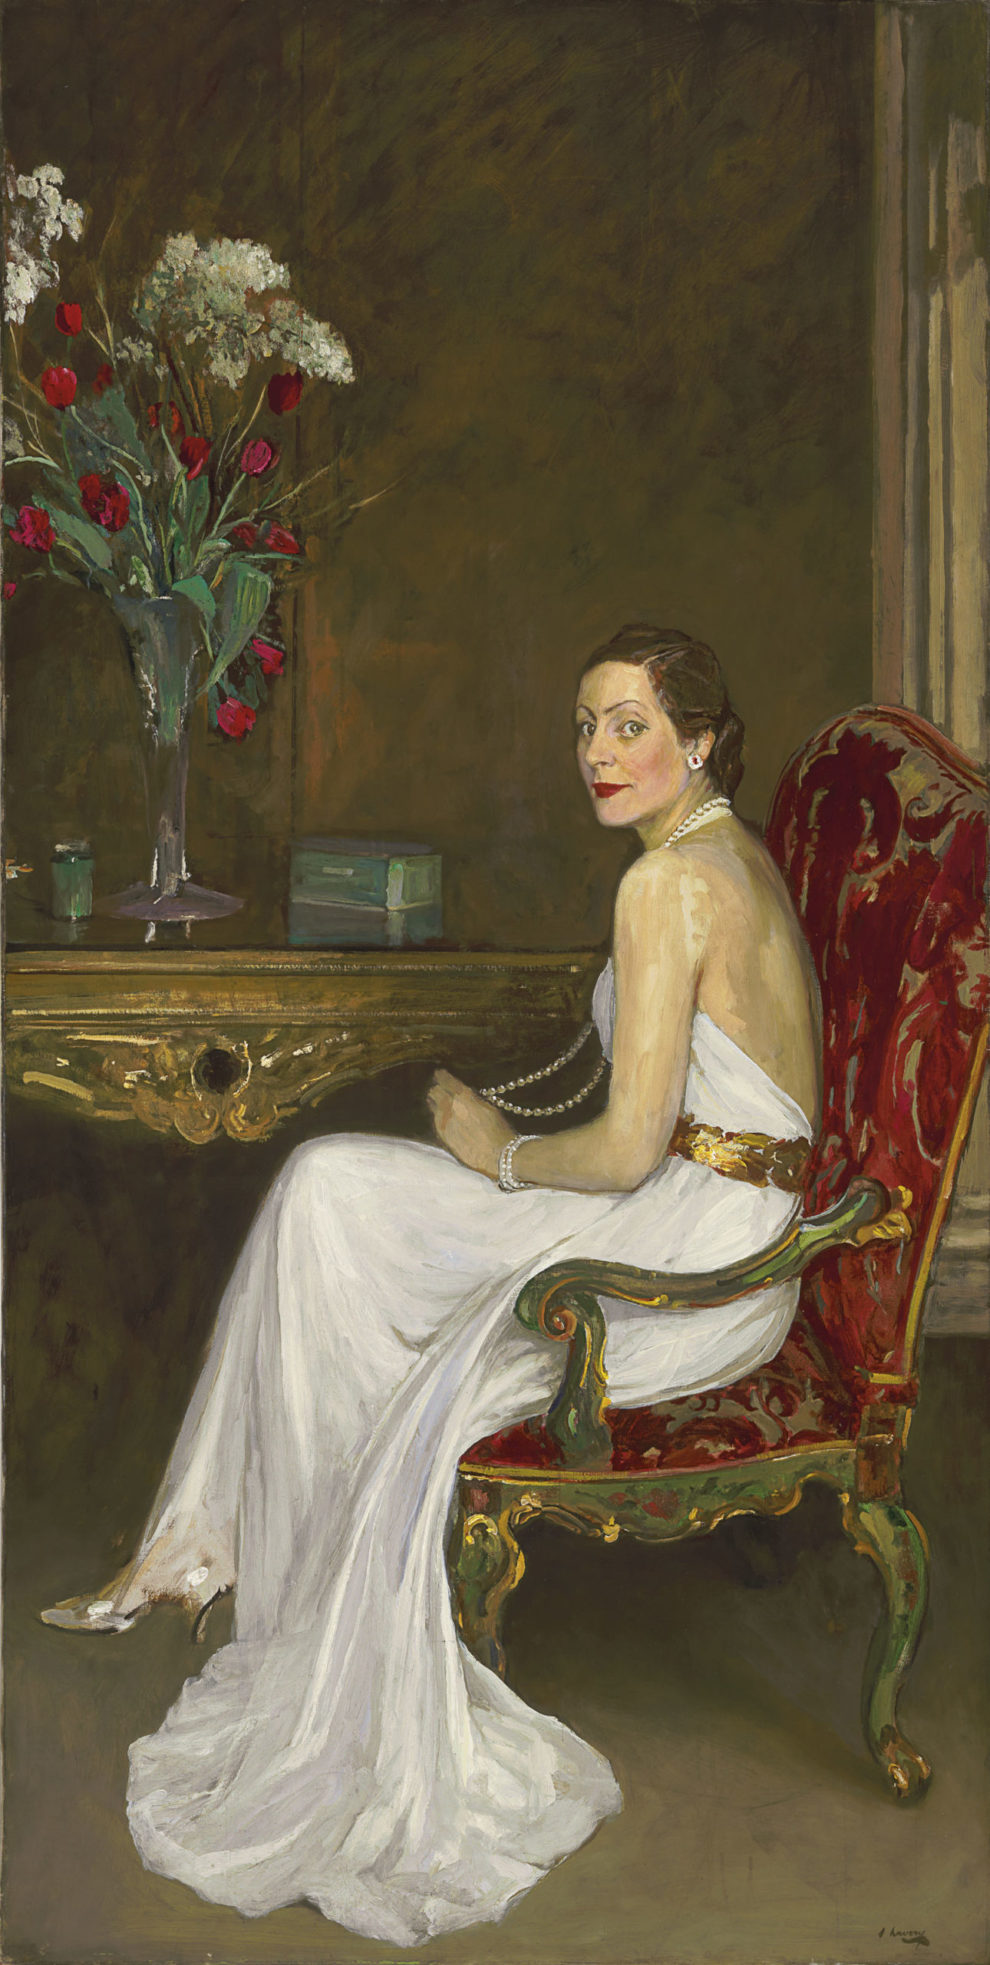 Sir John Lavery, The Lady in White, Viscountess Wimborne, 1939. Private collection.